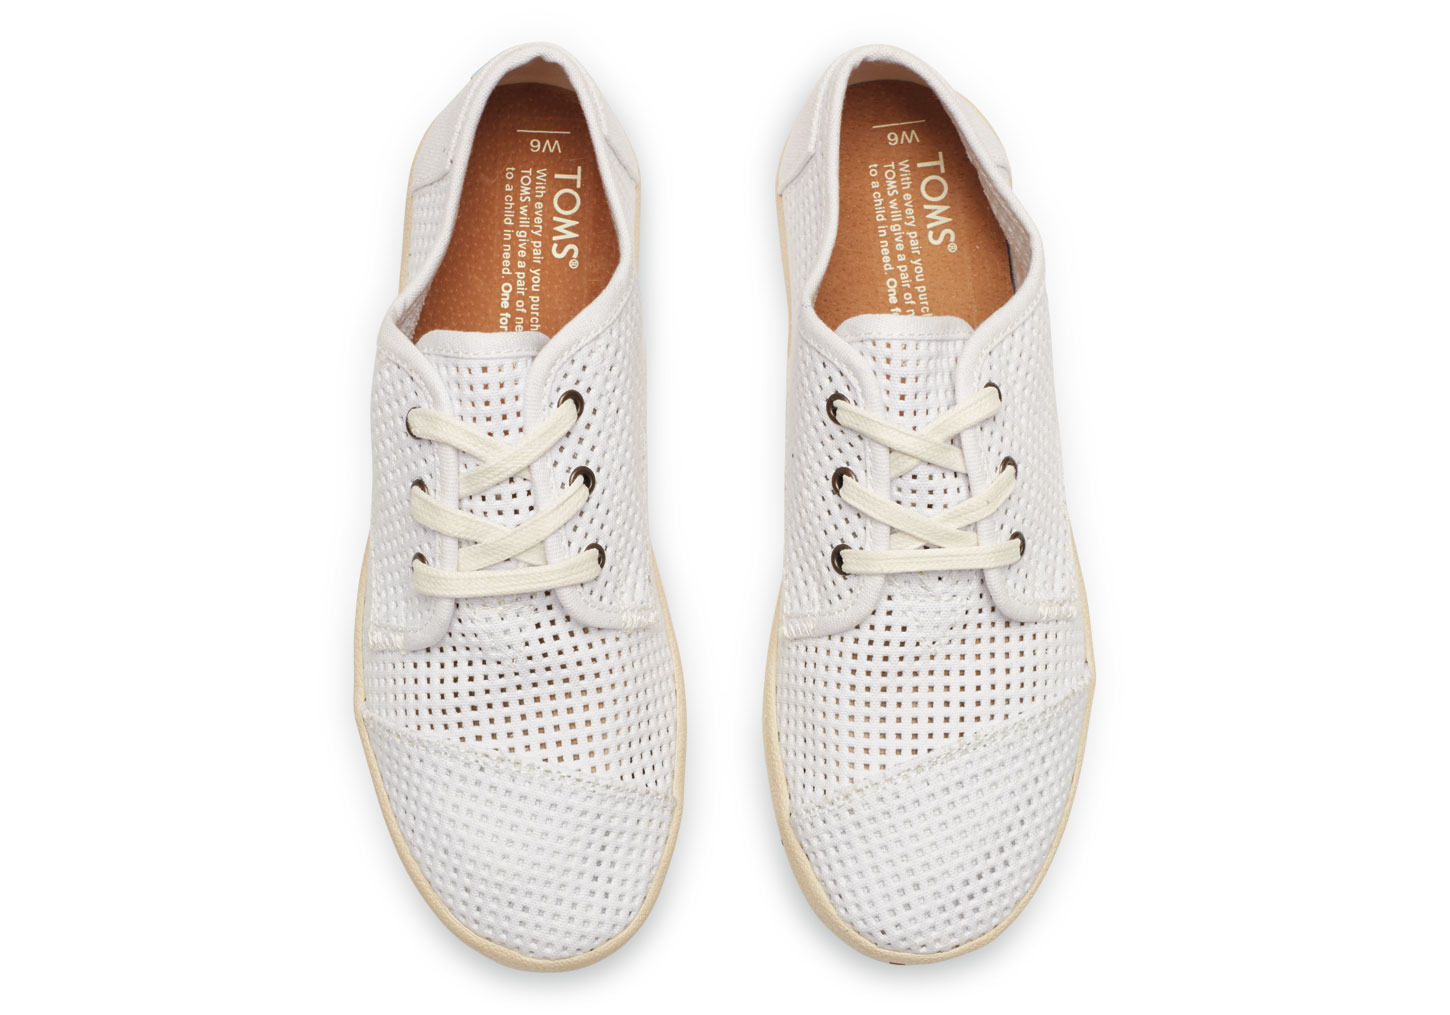 ... d28ce 4ce8c Toms White Canvas Perforated Womens Paseos in White - Lyst  amazing price a7c1cb9c6aaf